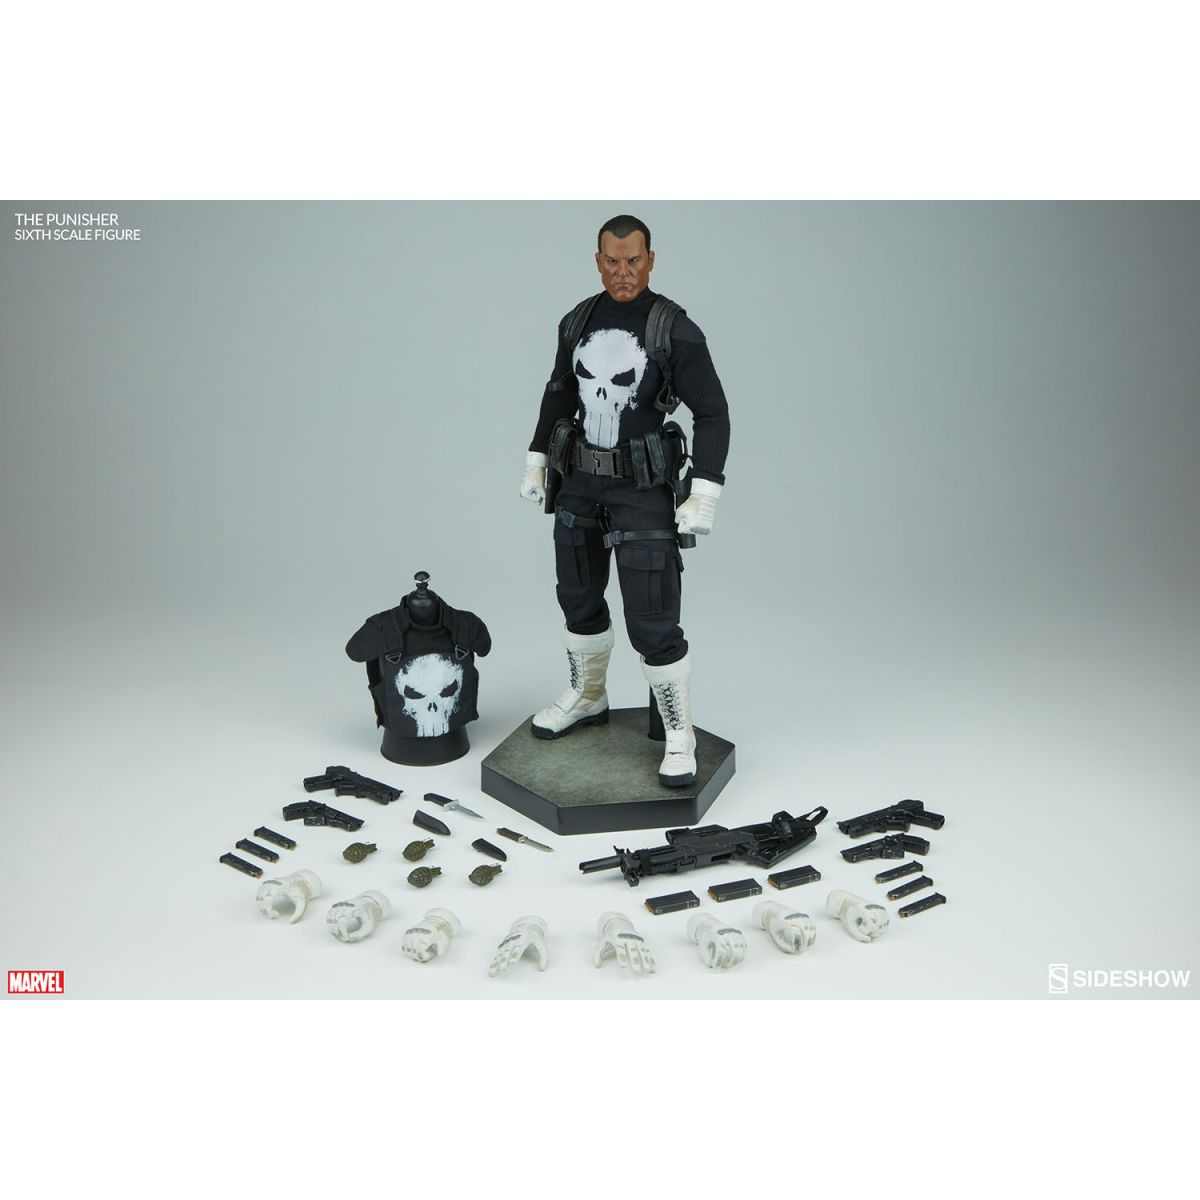 Sideshow Punisher / Justiceiro 1/6 Exclusive  - Movie Freaks Collectibles